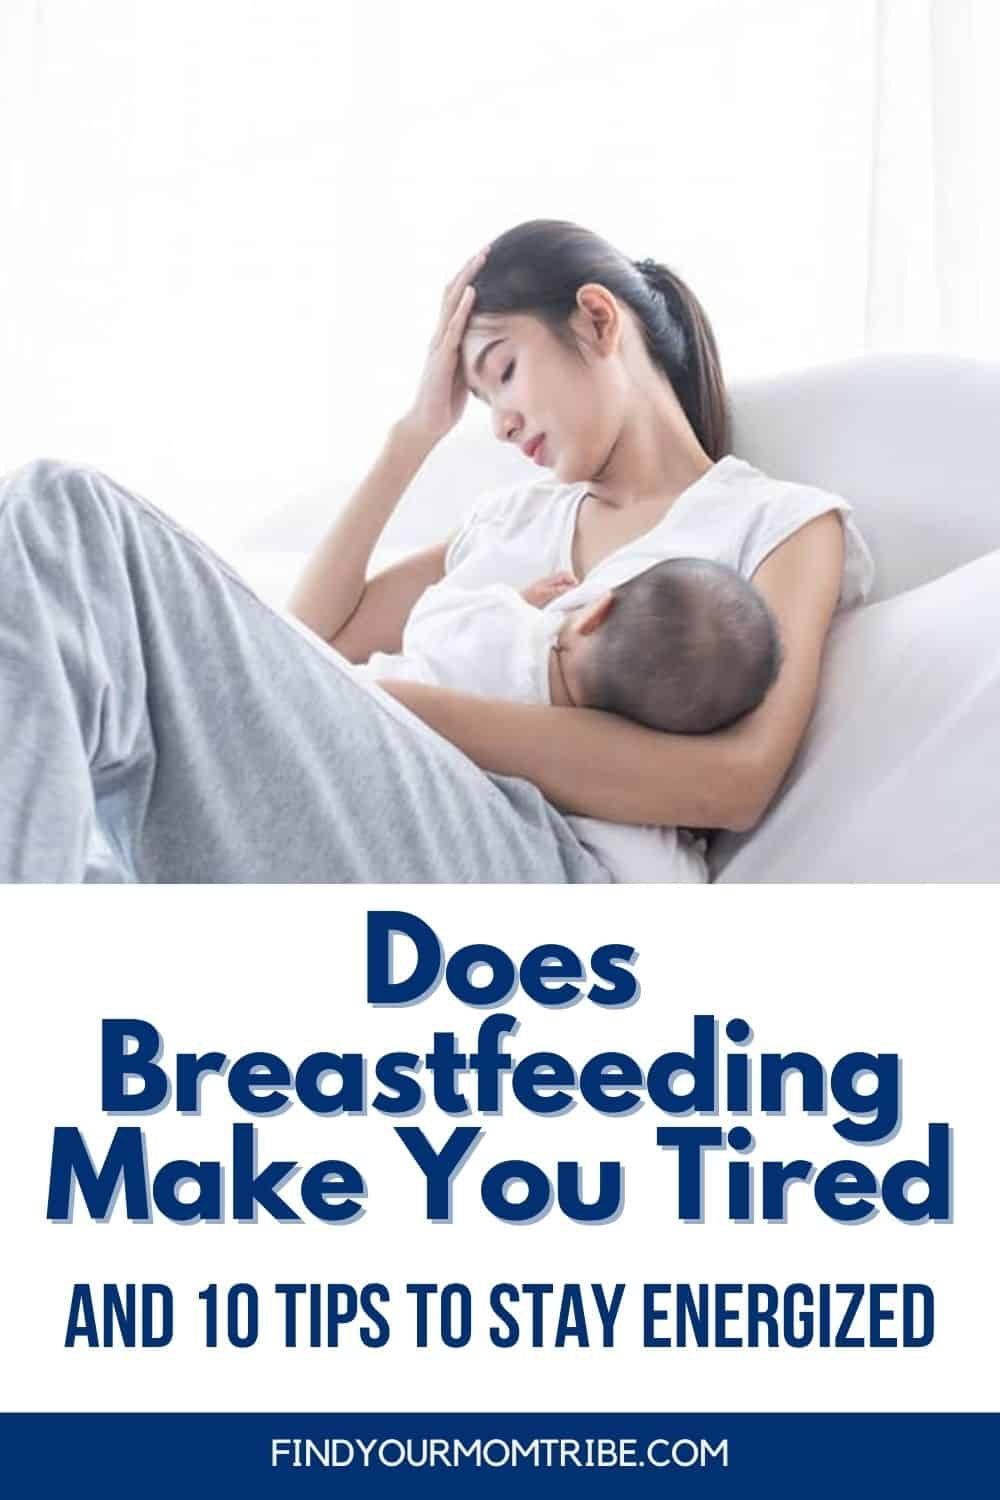 Does Breastfeeding Make You Tired And 10 Tips To Stay Energized